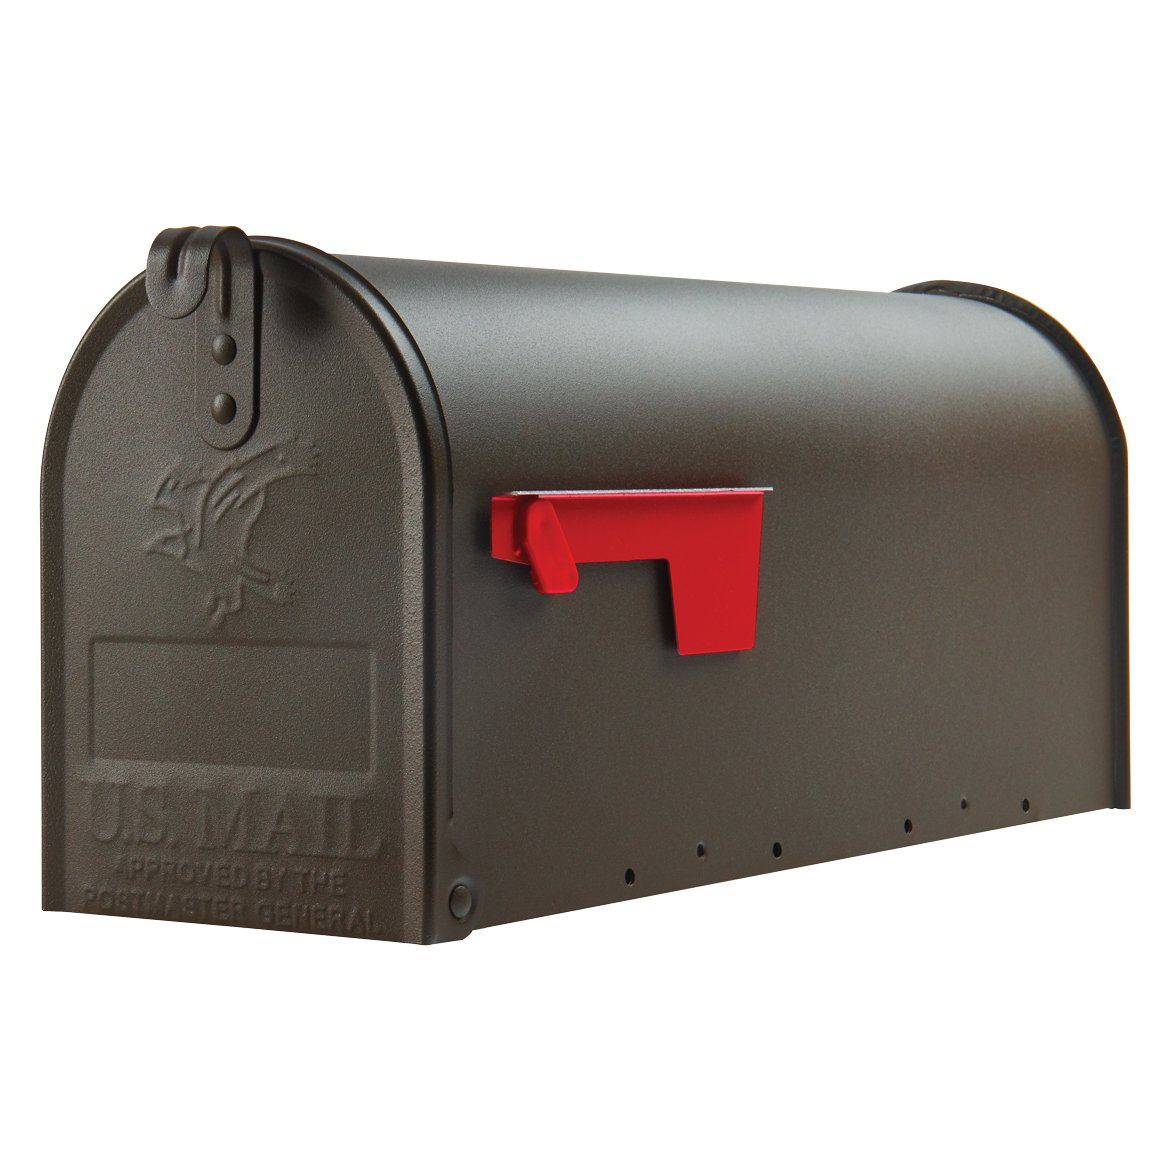 Gibraltar Mailboxes Elite Medium Capacity Galvanized Steel Bronze, Post-Mount Mailbox, E1100BZO by Gibraltar Mailboxes